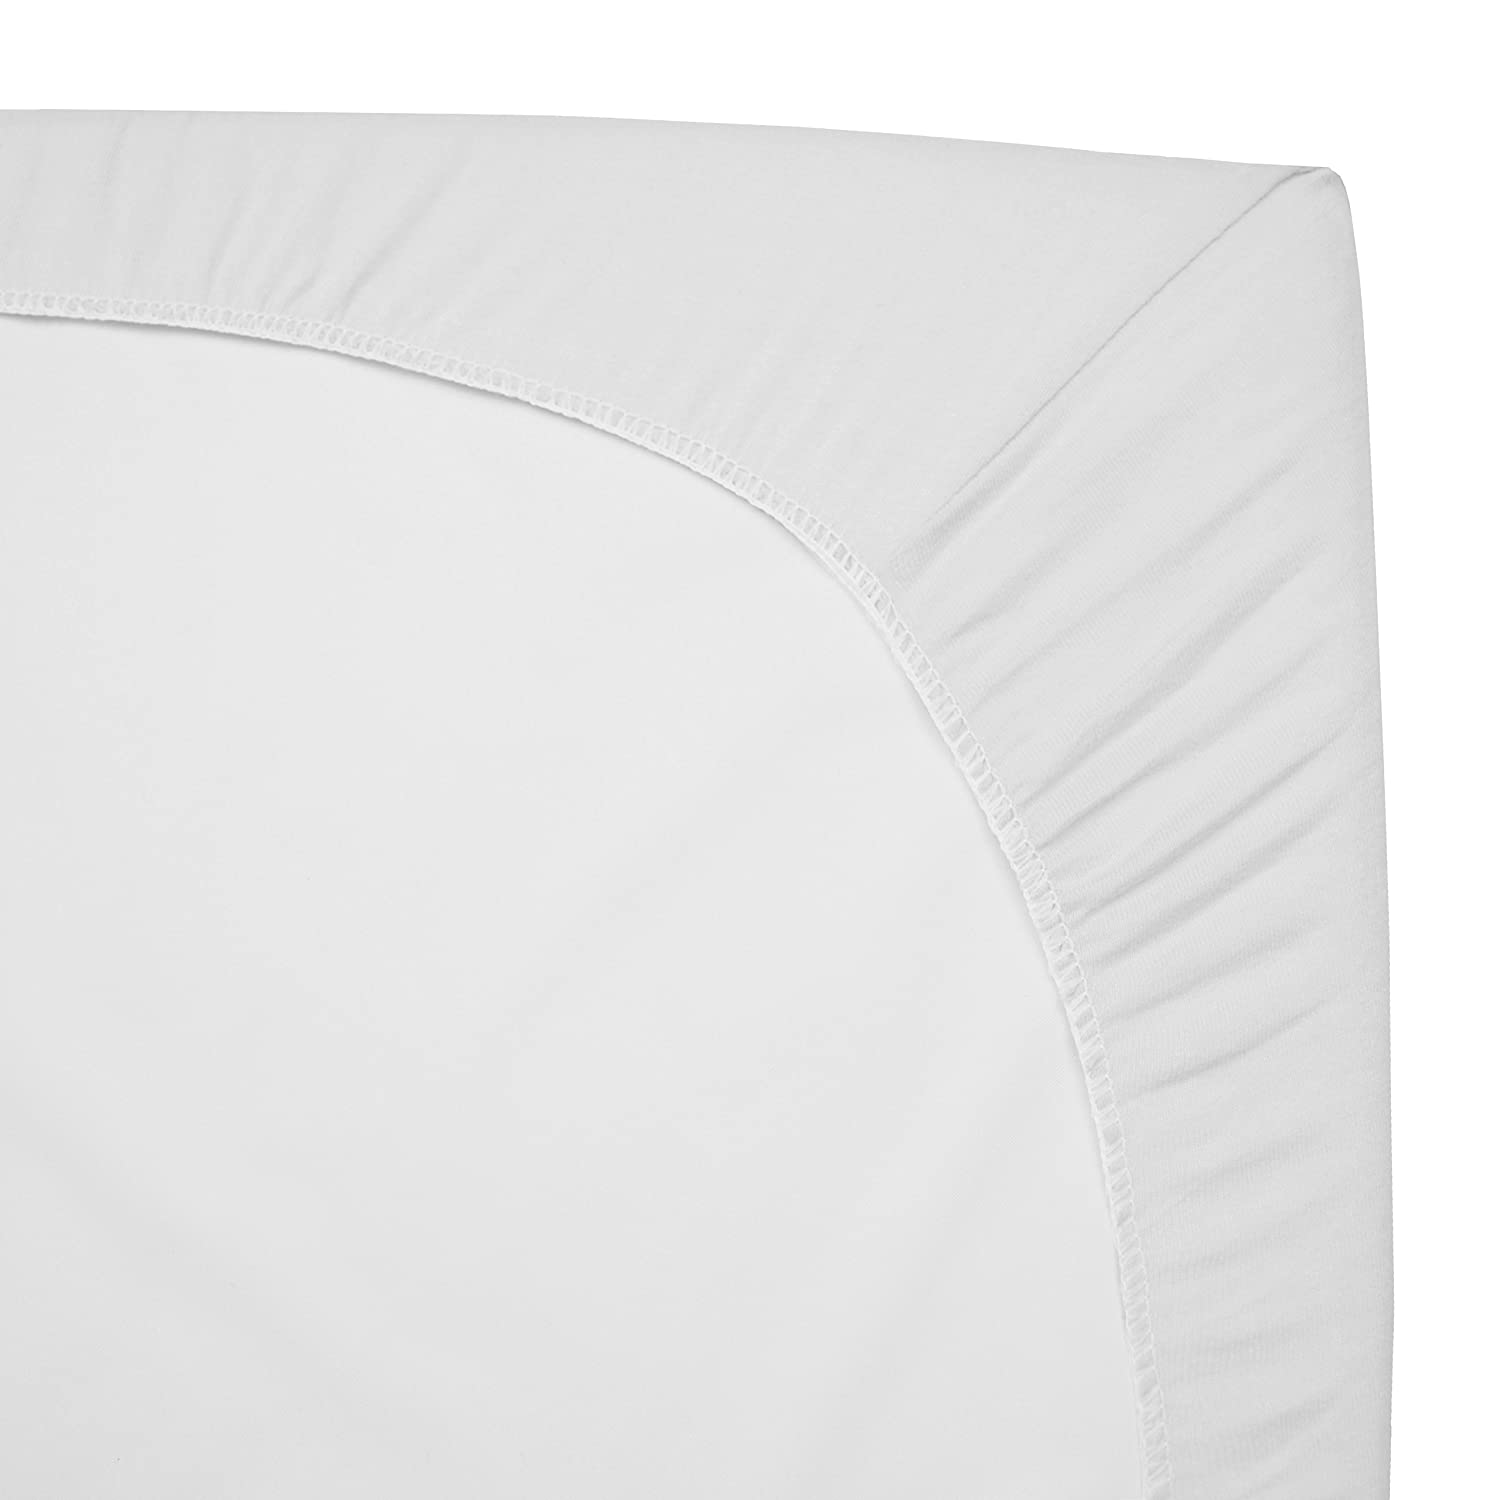 Fitted,/White Soft Breathable American Baby Company 3 Pack 100/% Natural Cotton Jersey Knit 18 x 36 Cradle Sheet for Boys and Girls